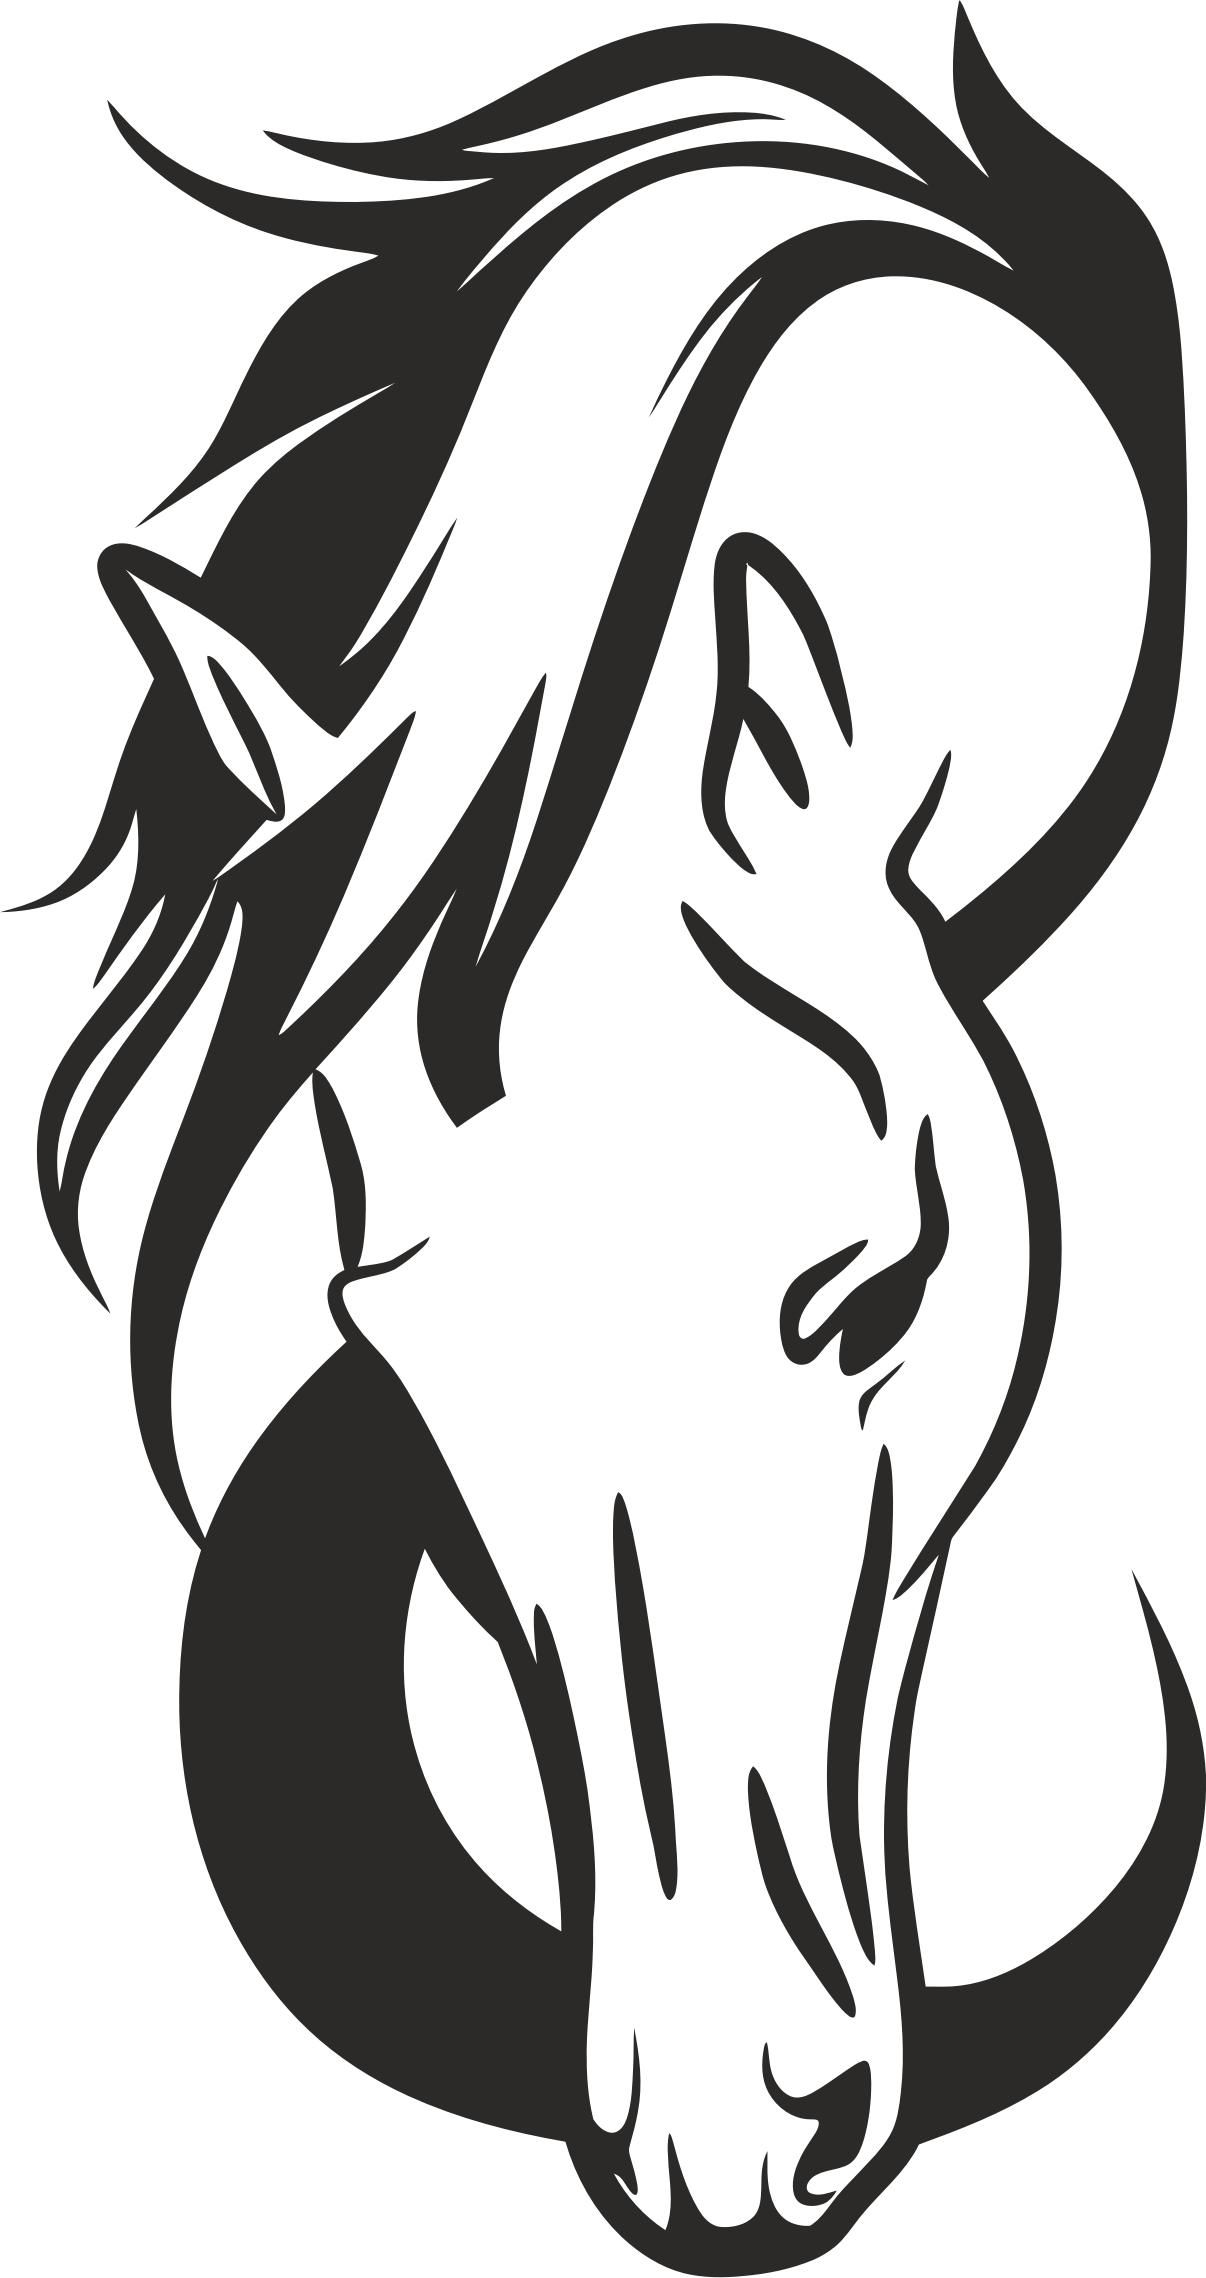 Horse Head Silhouette Png Icons Horse Silhouette Horse Stencil Horse Tattoo Design